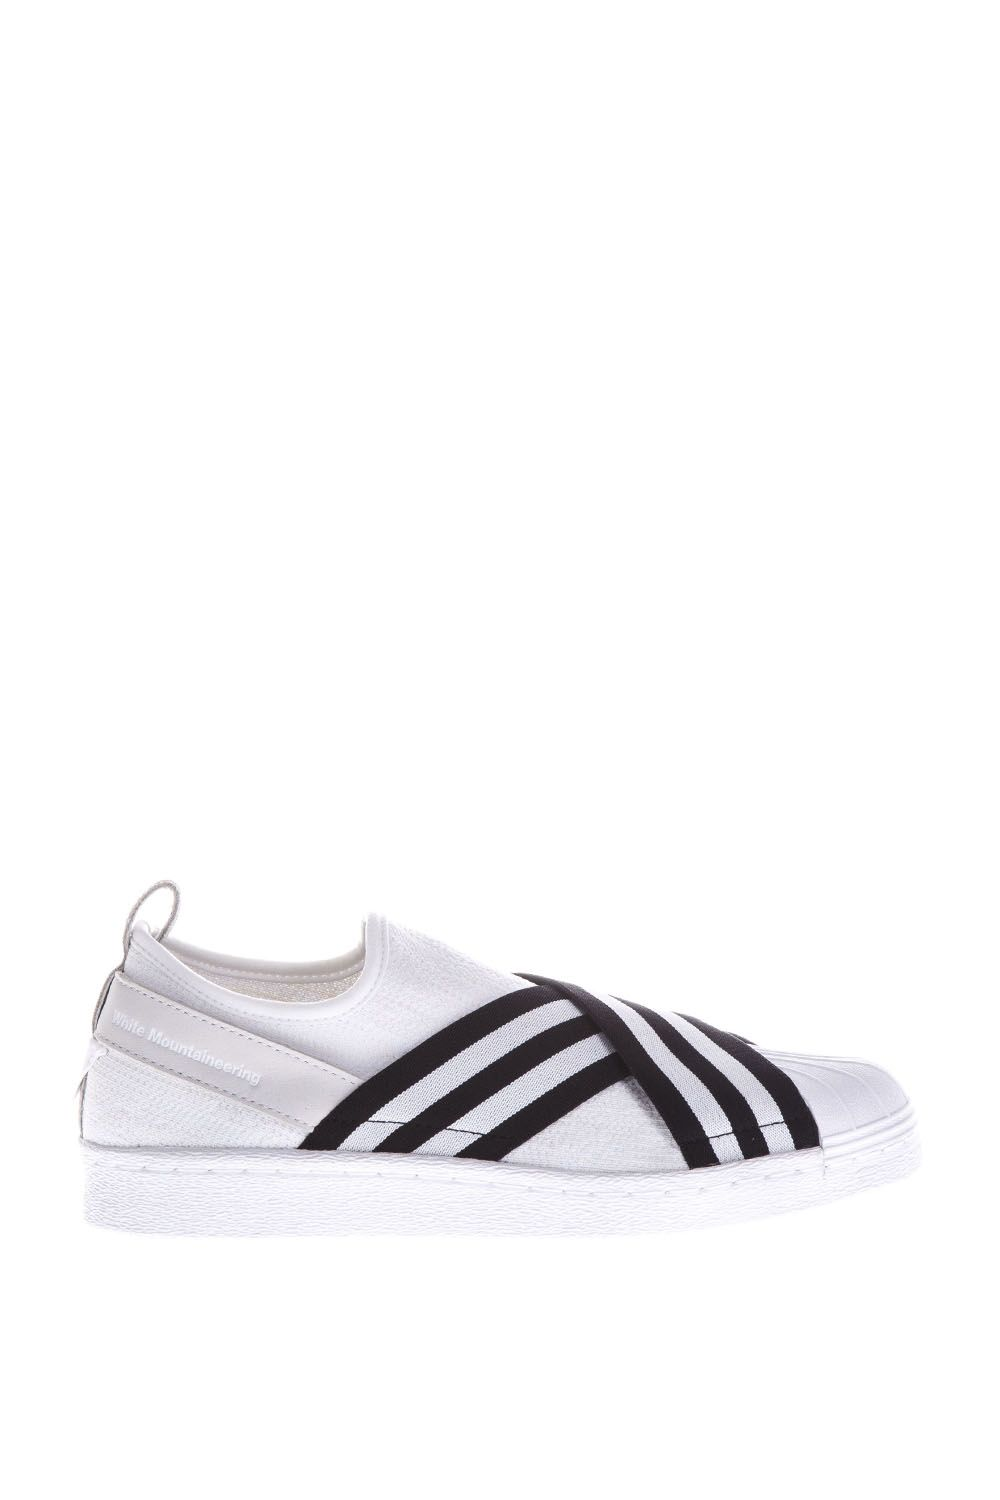 Adidas Originals Superstar Slip-on Sneakers